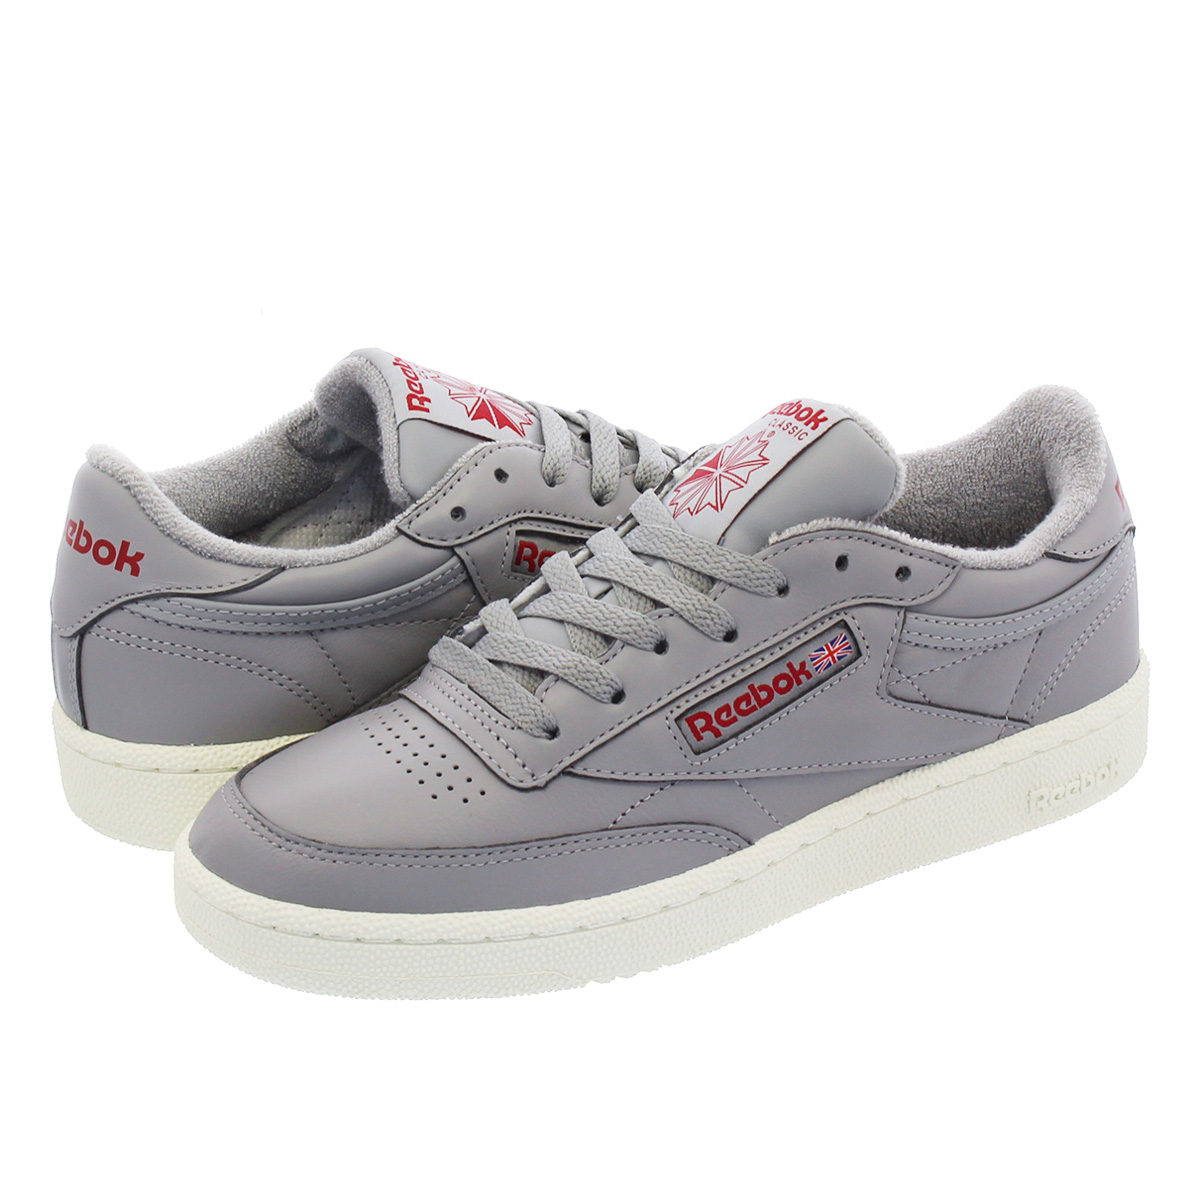 03516e221c12 Reebok CLUB C 85 VINTAGE Reebok club C 85 vintage SOLID GREY POWER  RED CHALK cn5374